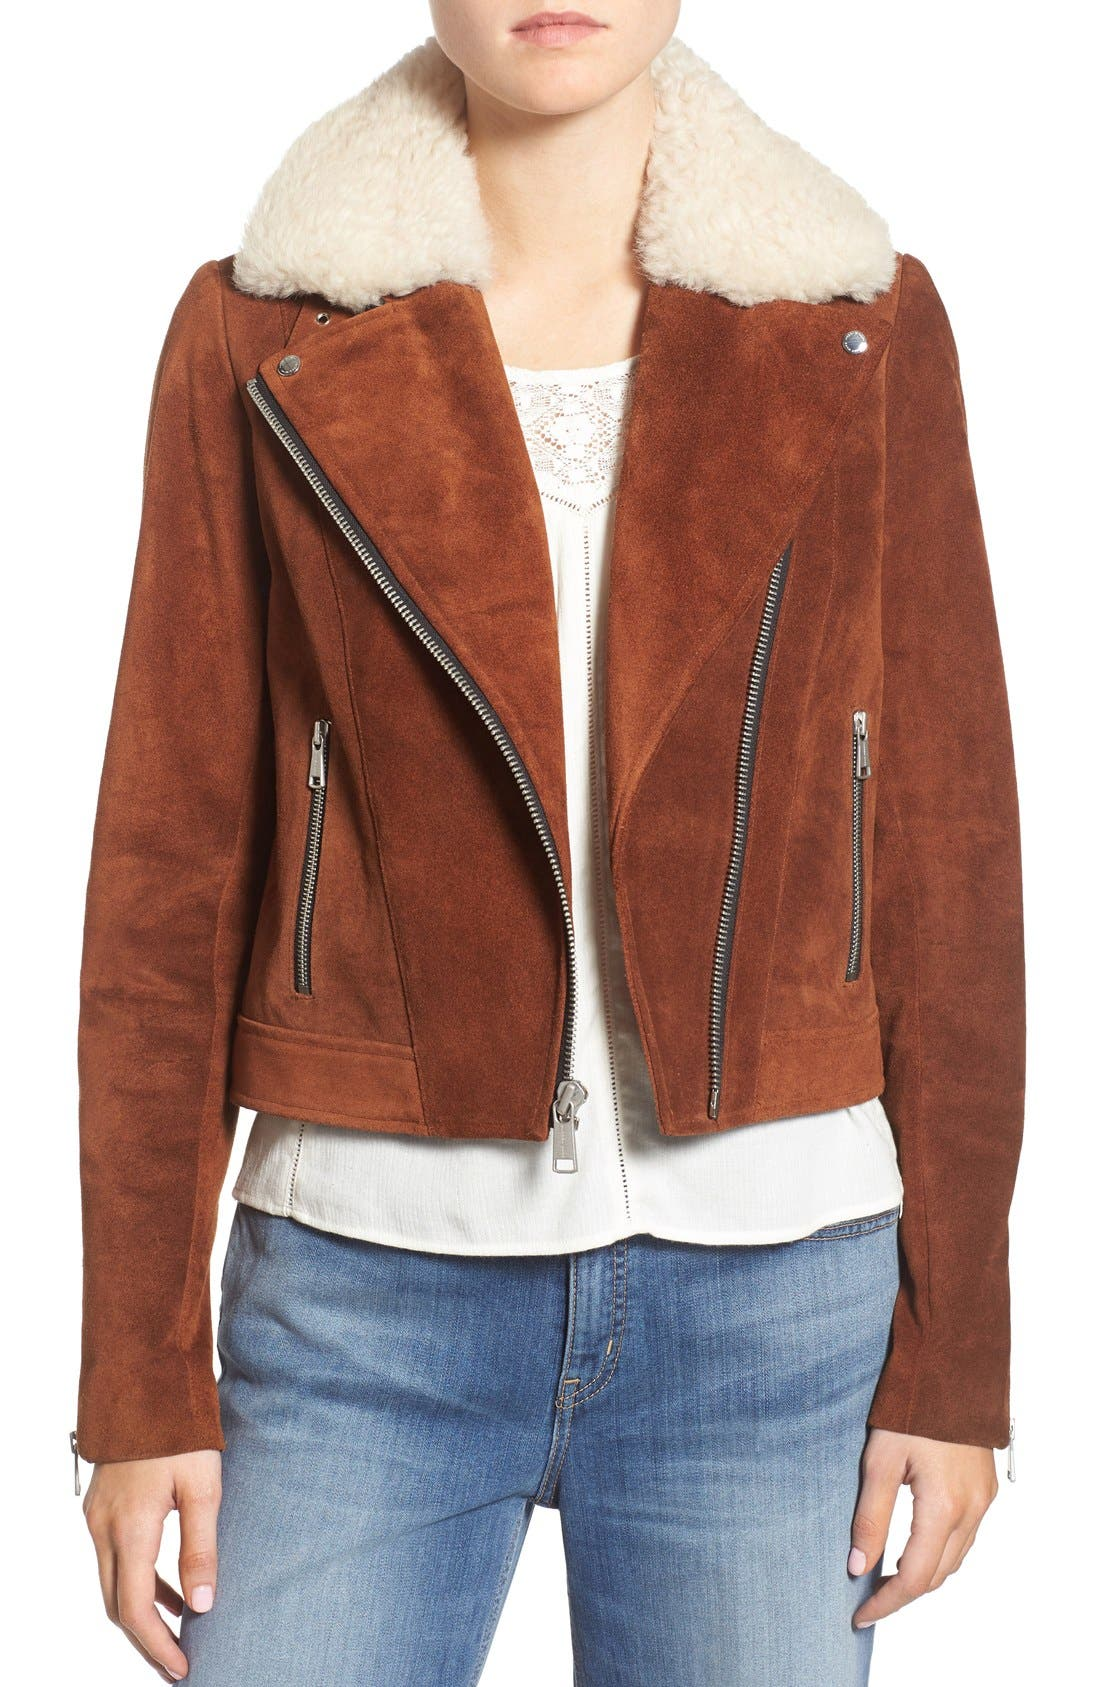 Alternate Image 1 Selected - Andrew Marc Suede Jacket with Genuine Shearling Collar